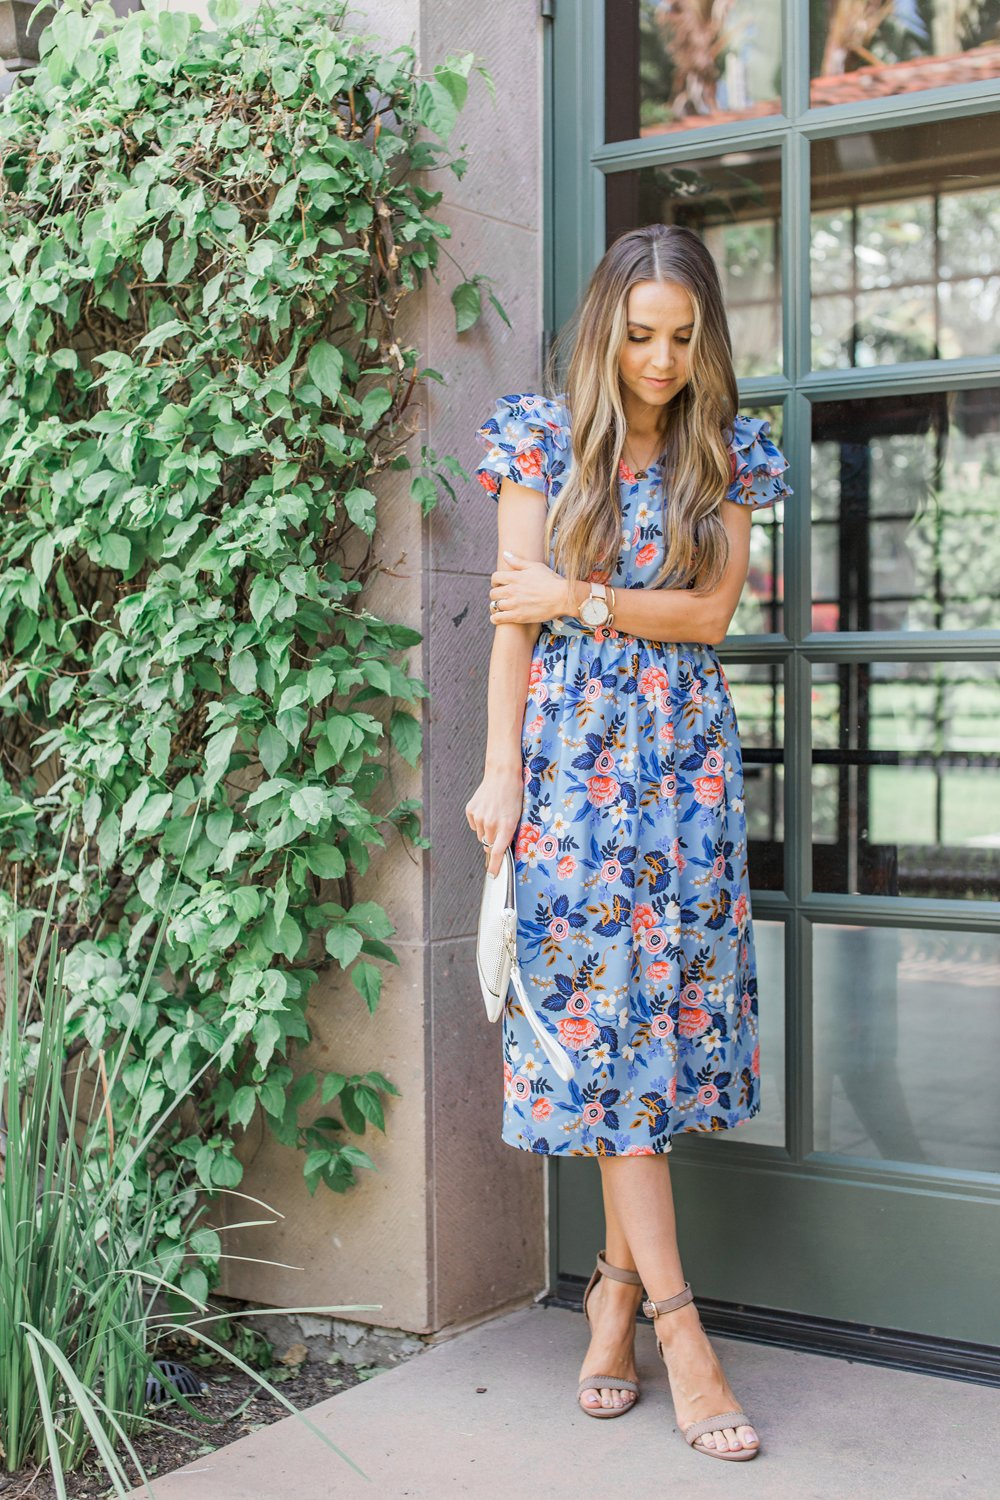 Merrick's Art | Blue Floral Midi Dress